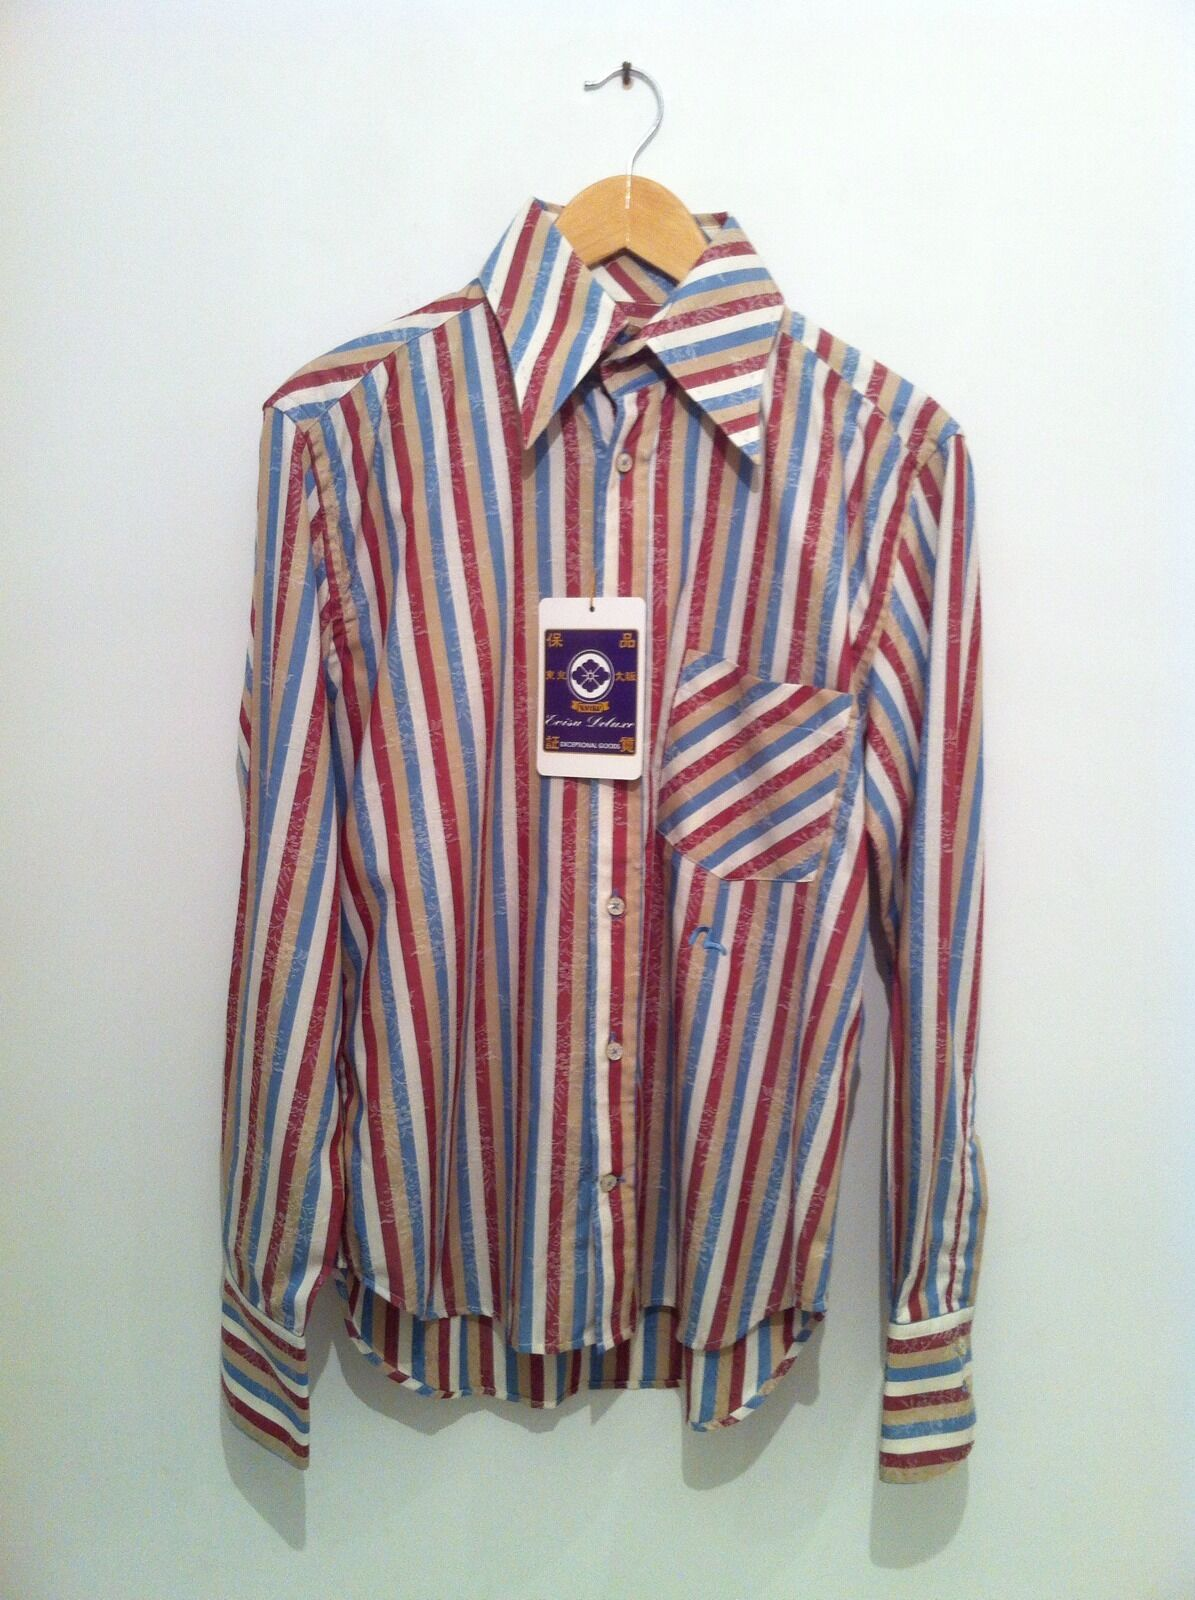 BNWT Replay Long Sleeve Shirt In Red Stripe Size M